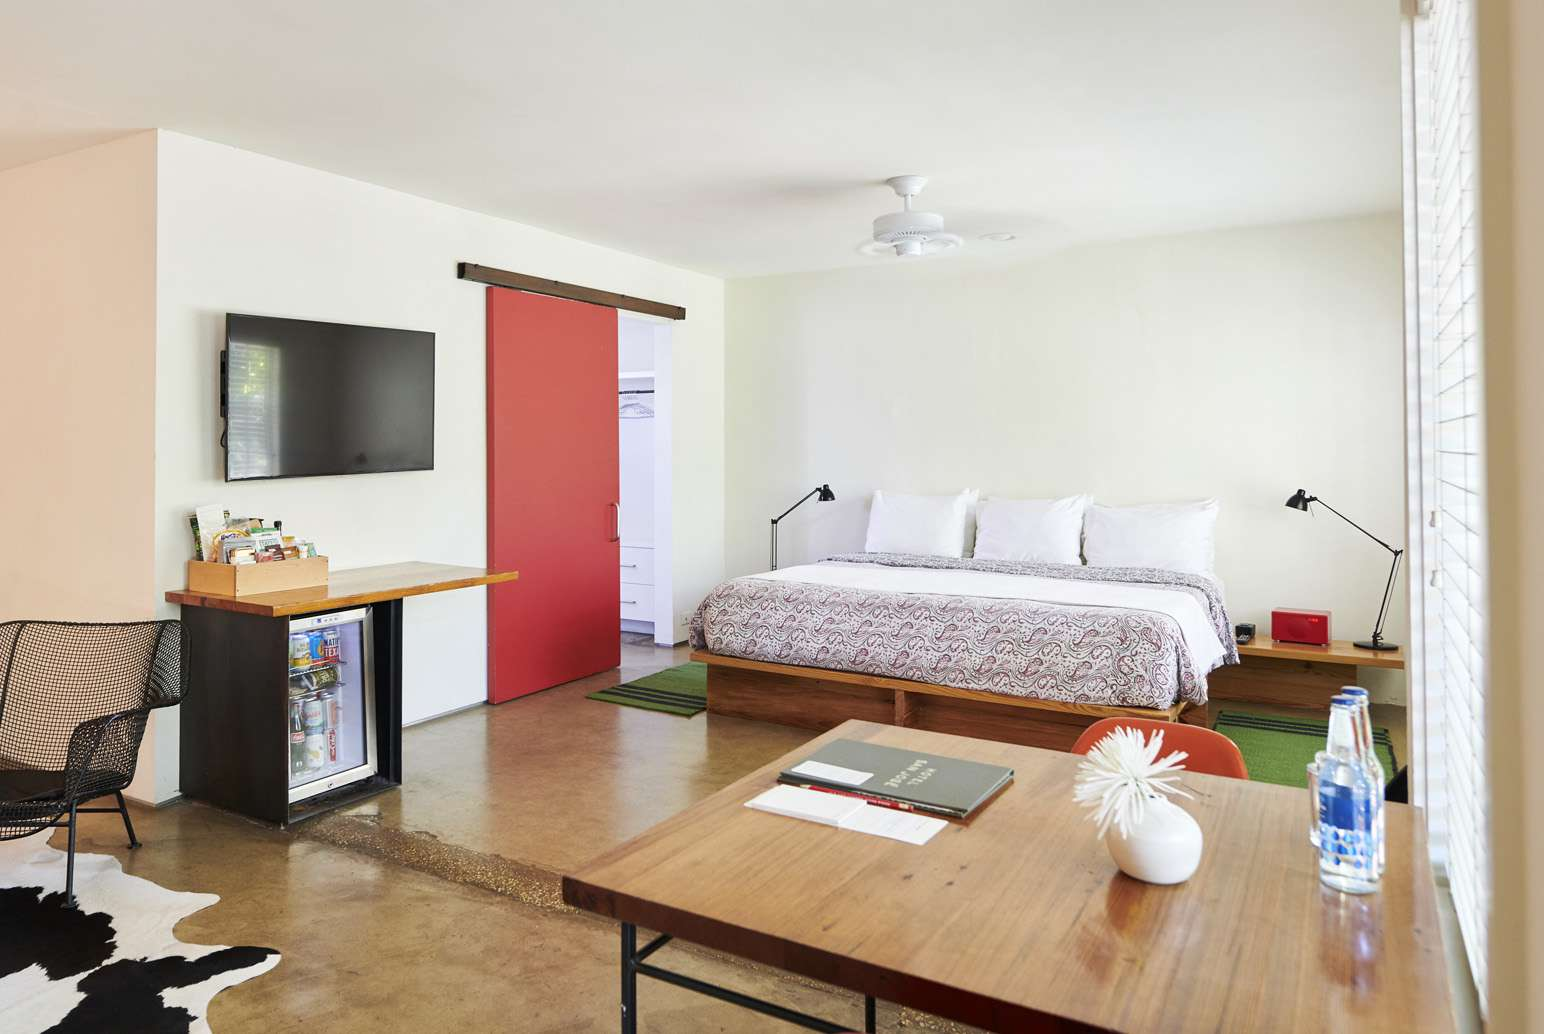 floor decor austin.htm the 9 best boutique hotels in austin of 2020  best boutique hotels in austin of 2020